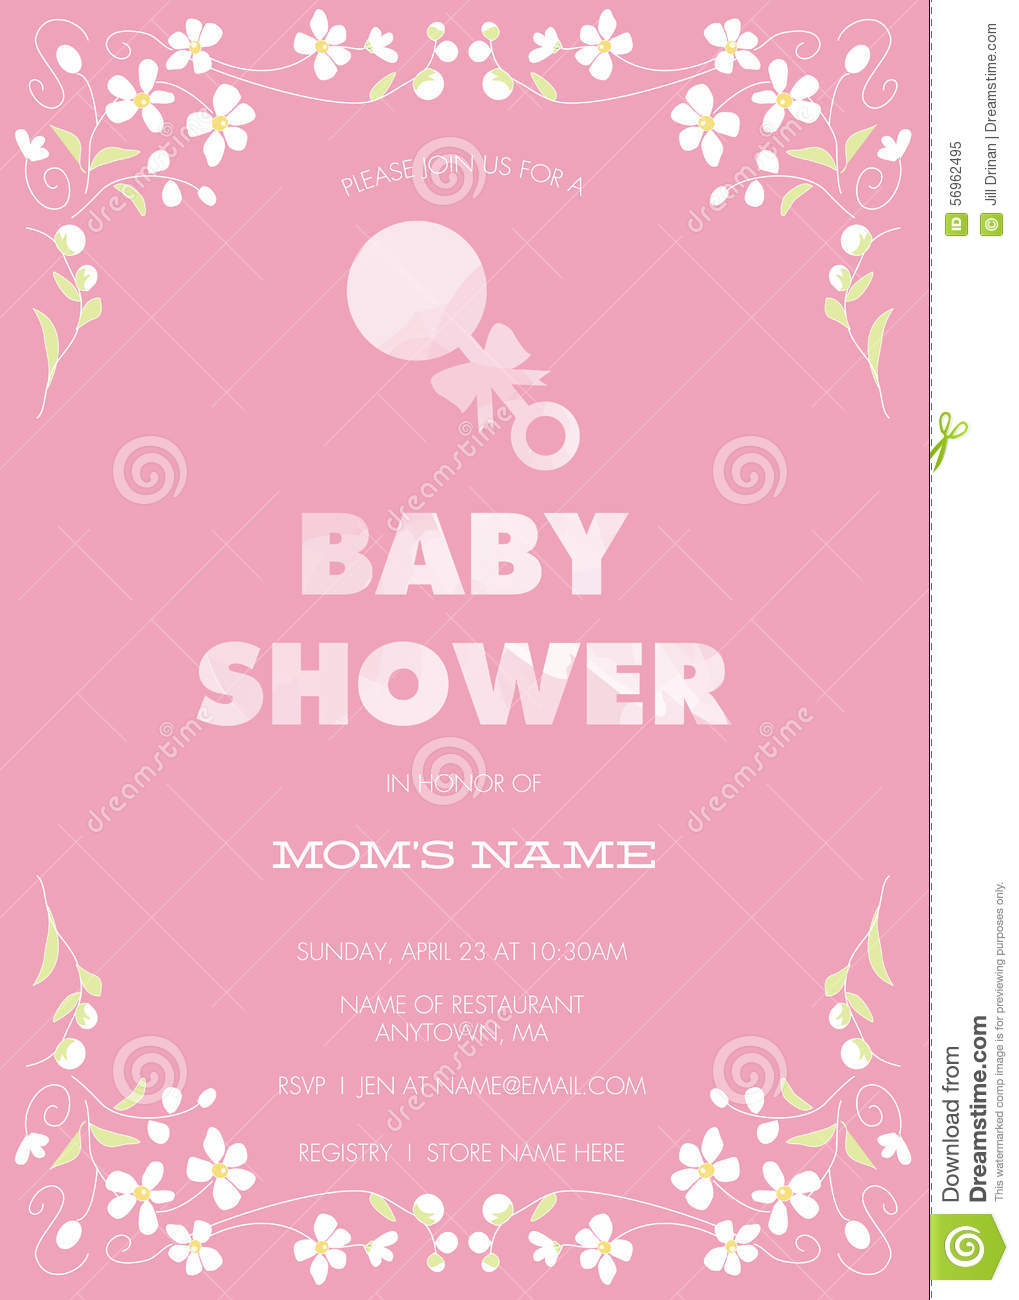 Pink Baby Shower Invitation Template With Abstract Flowers And - Pink baby shower invitation templates